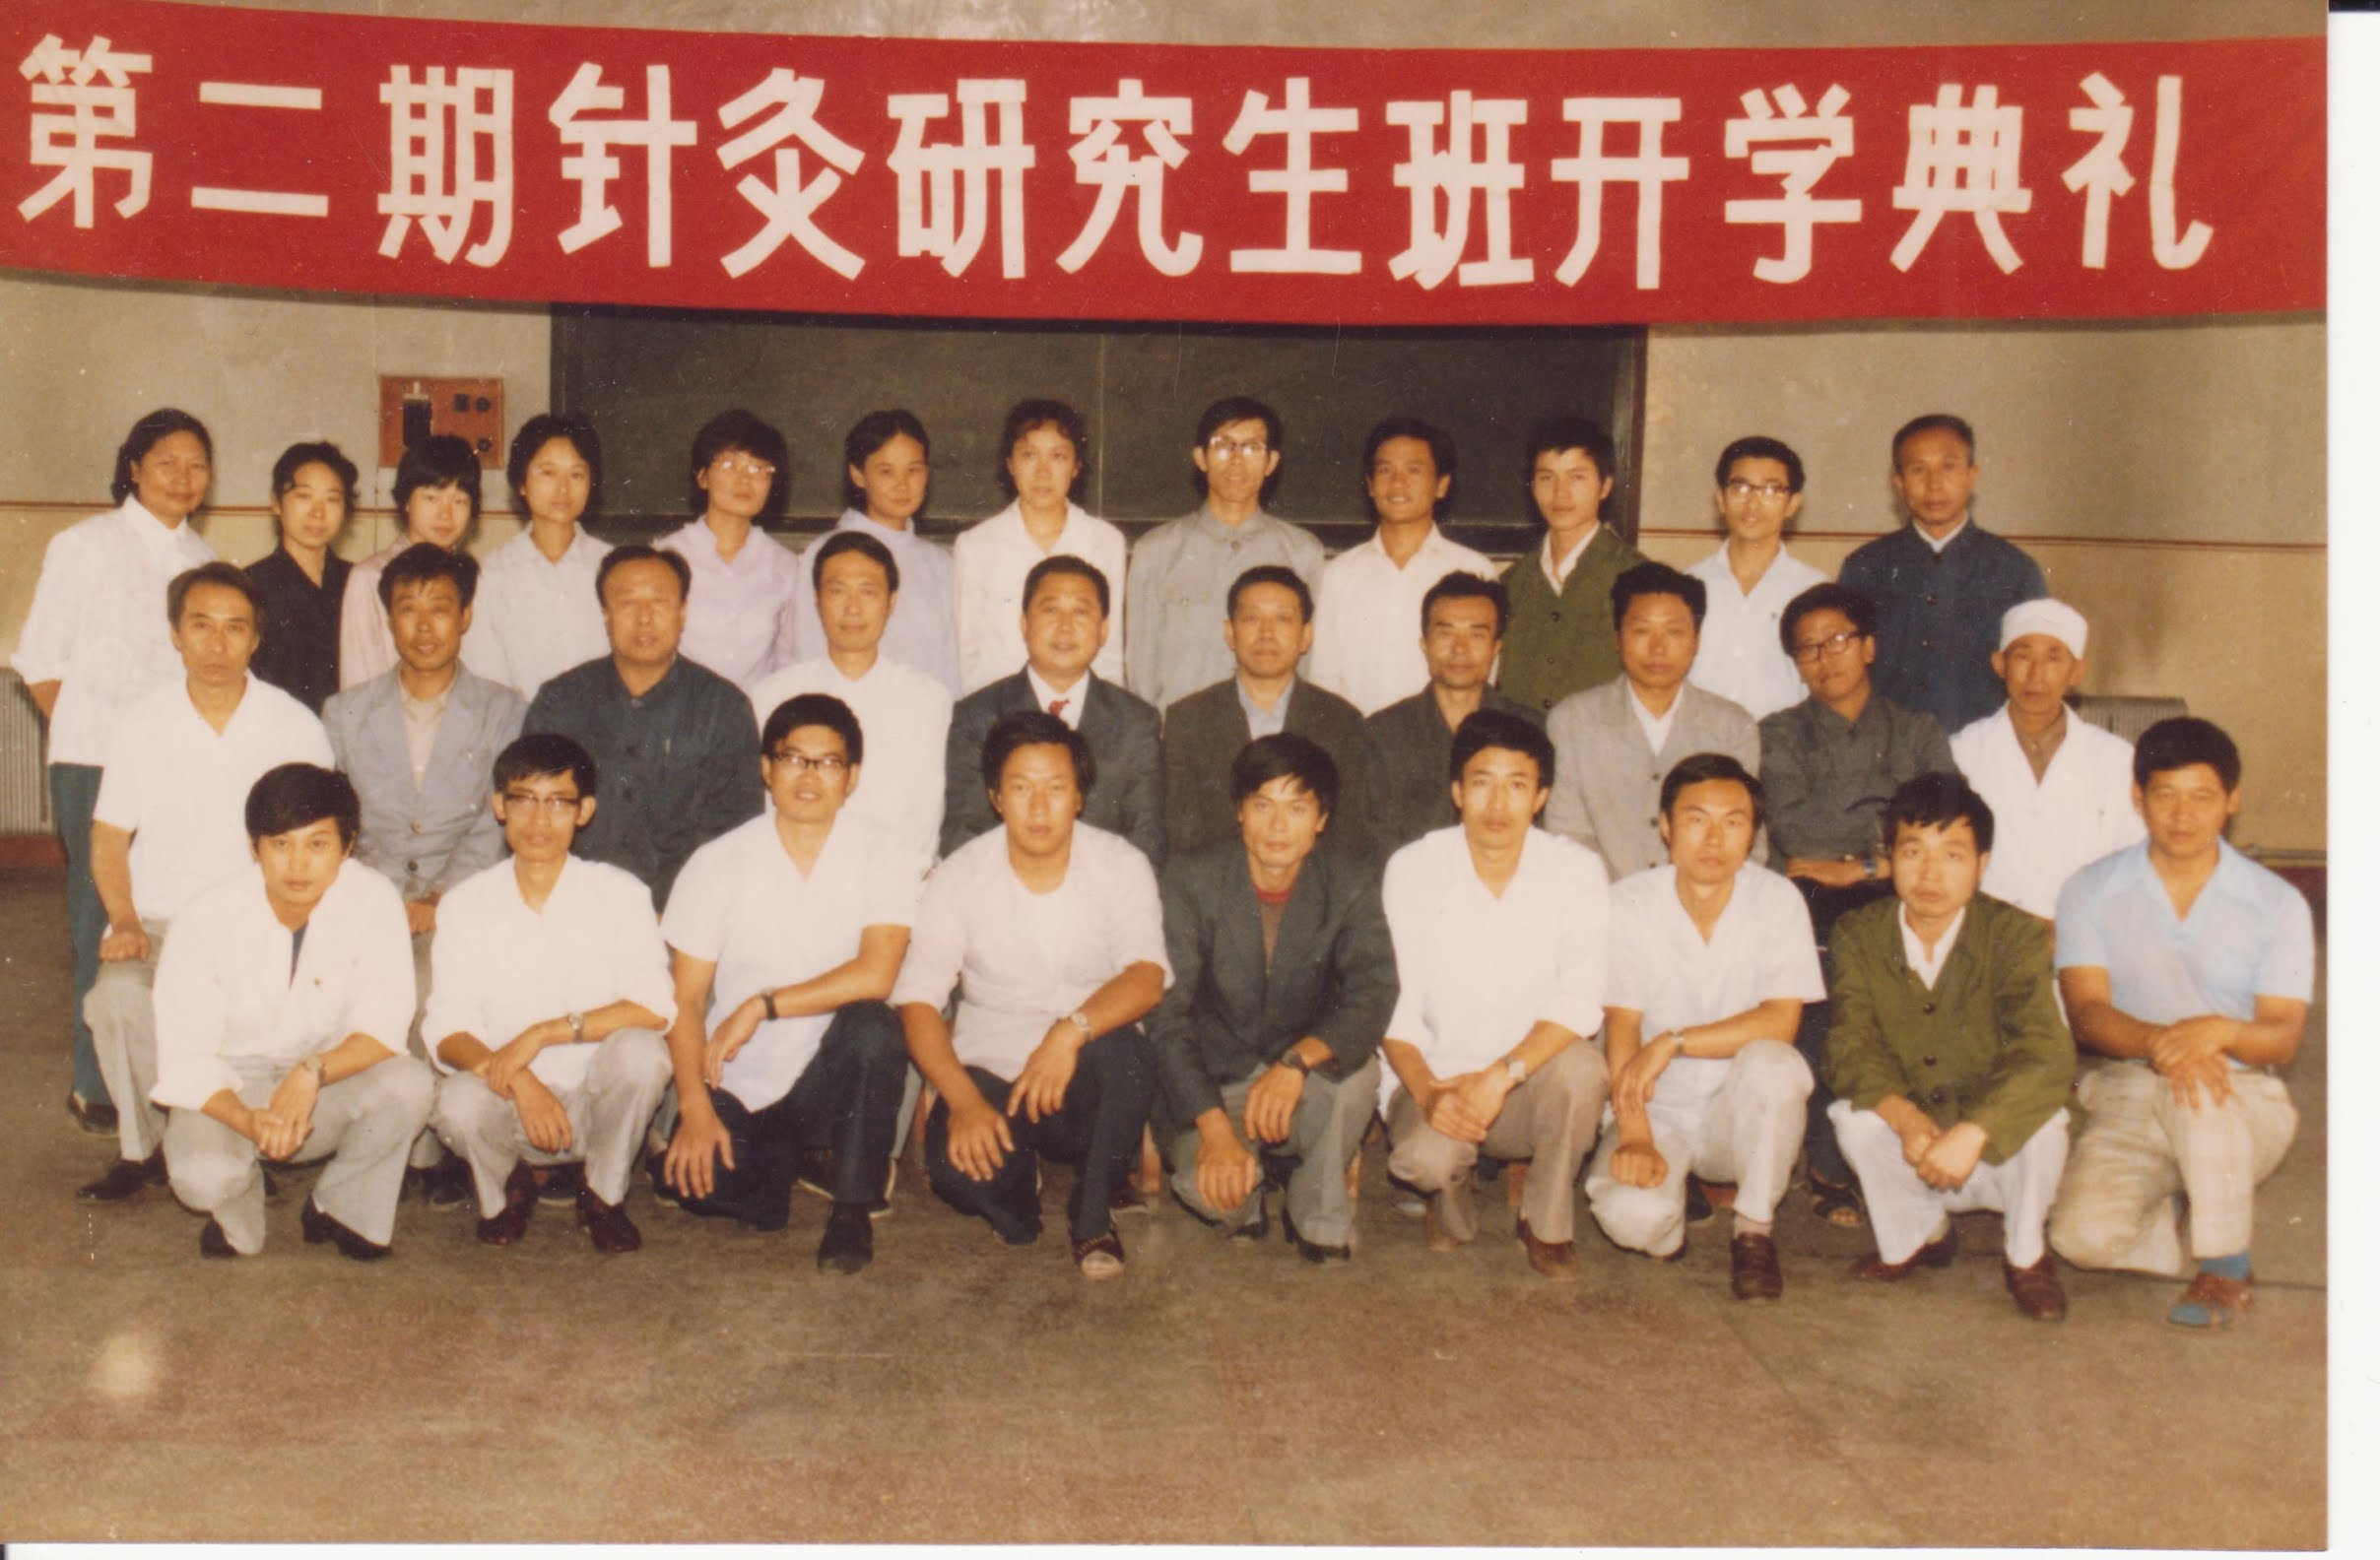 1985 – 1988 Studied at China Academy of ChineseMedical Science, graduated with masters degree in acupuncture.